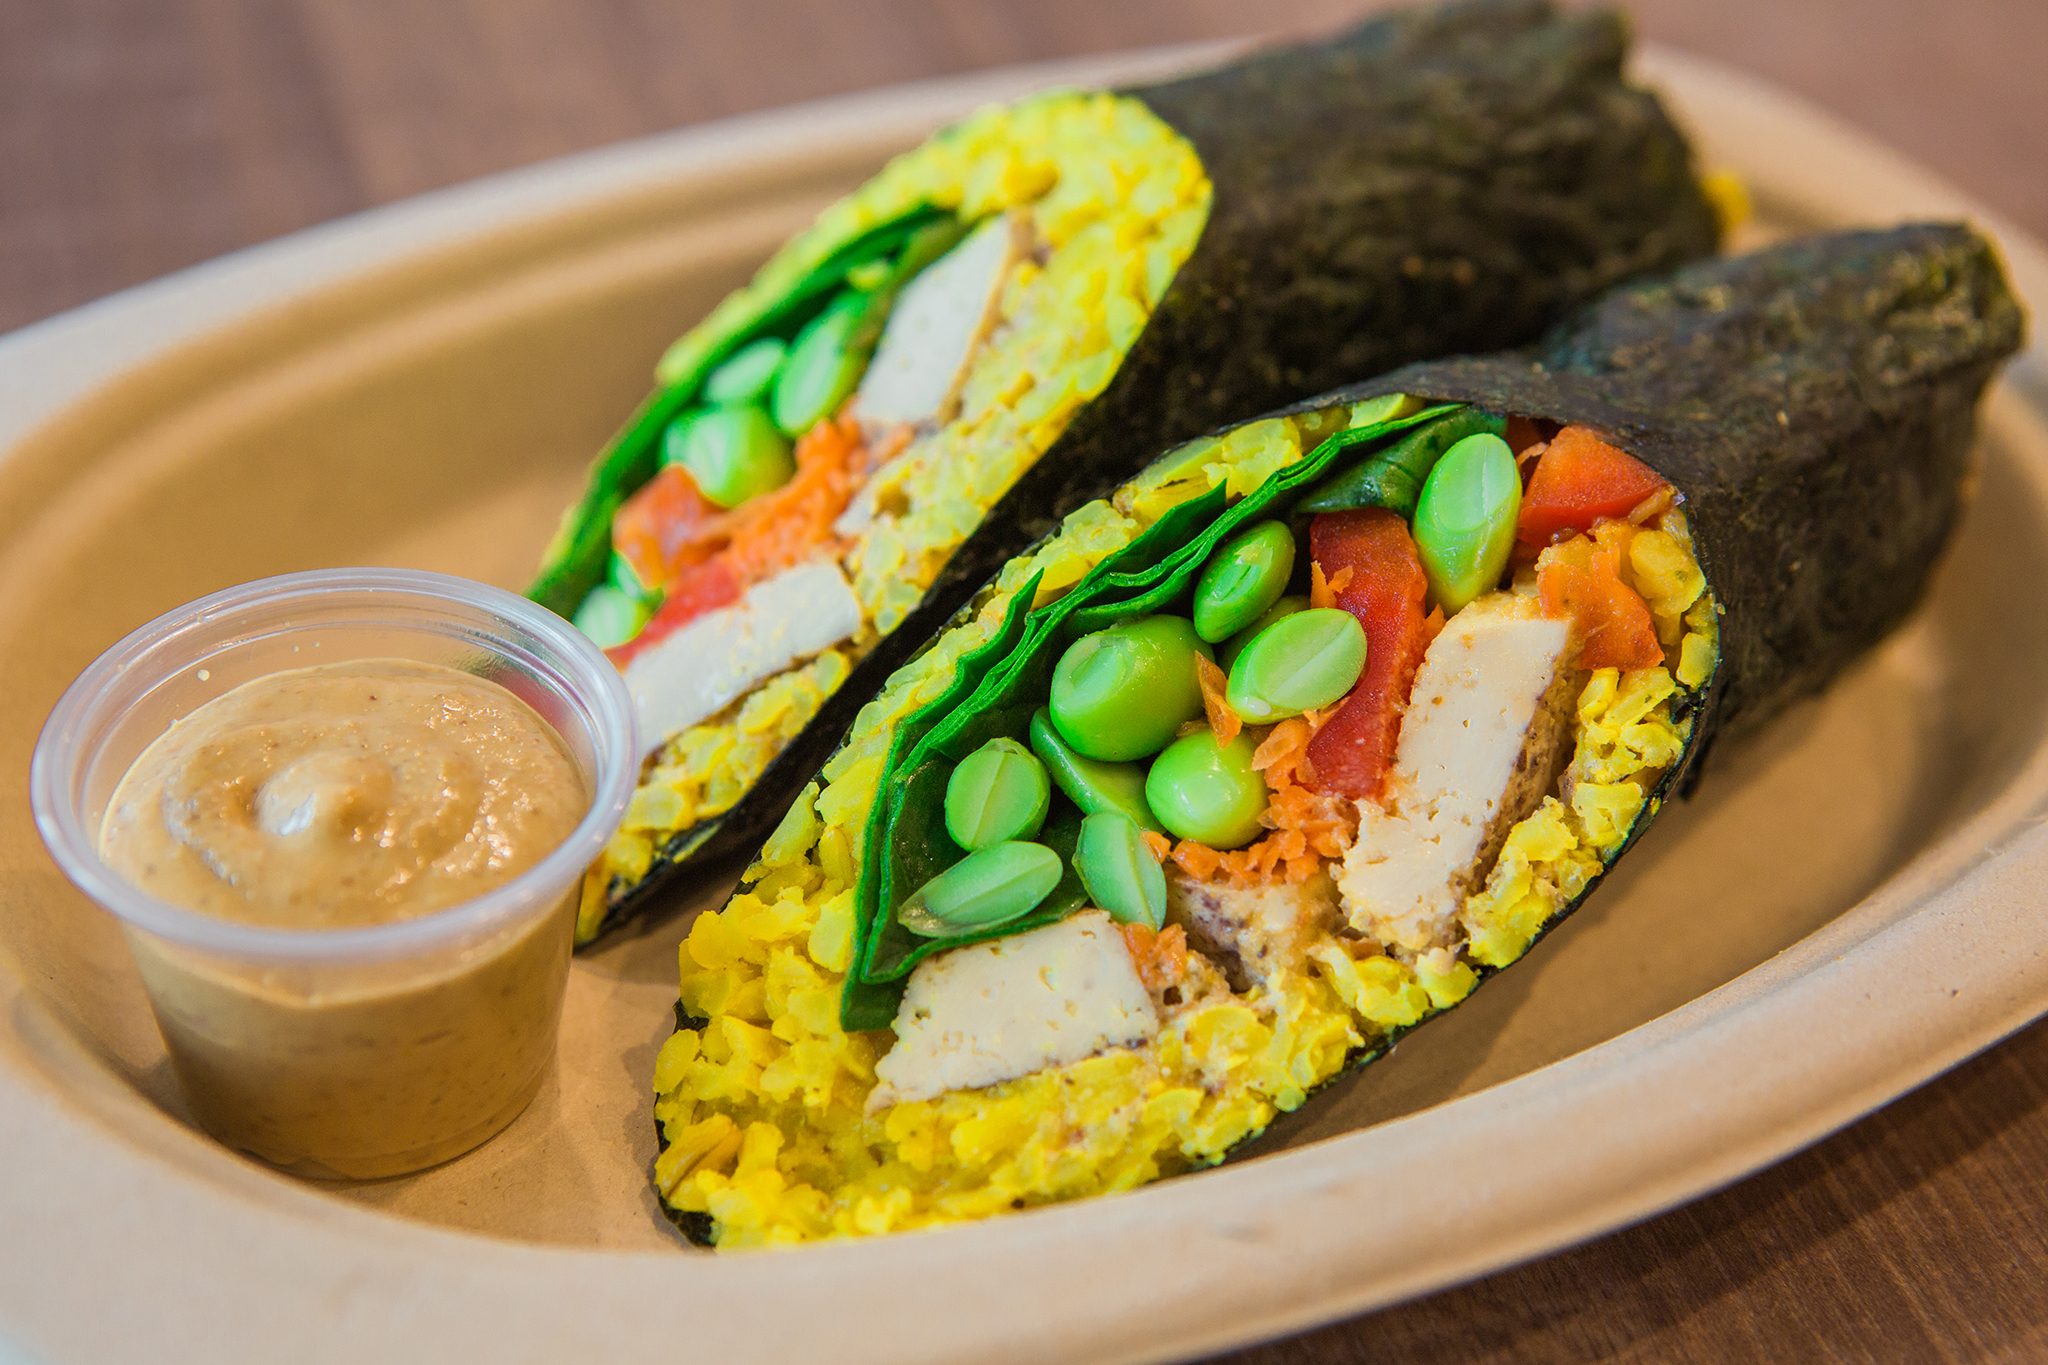 10 Best Vegan Restaurants In Miami To Try Right Now